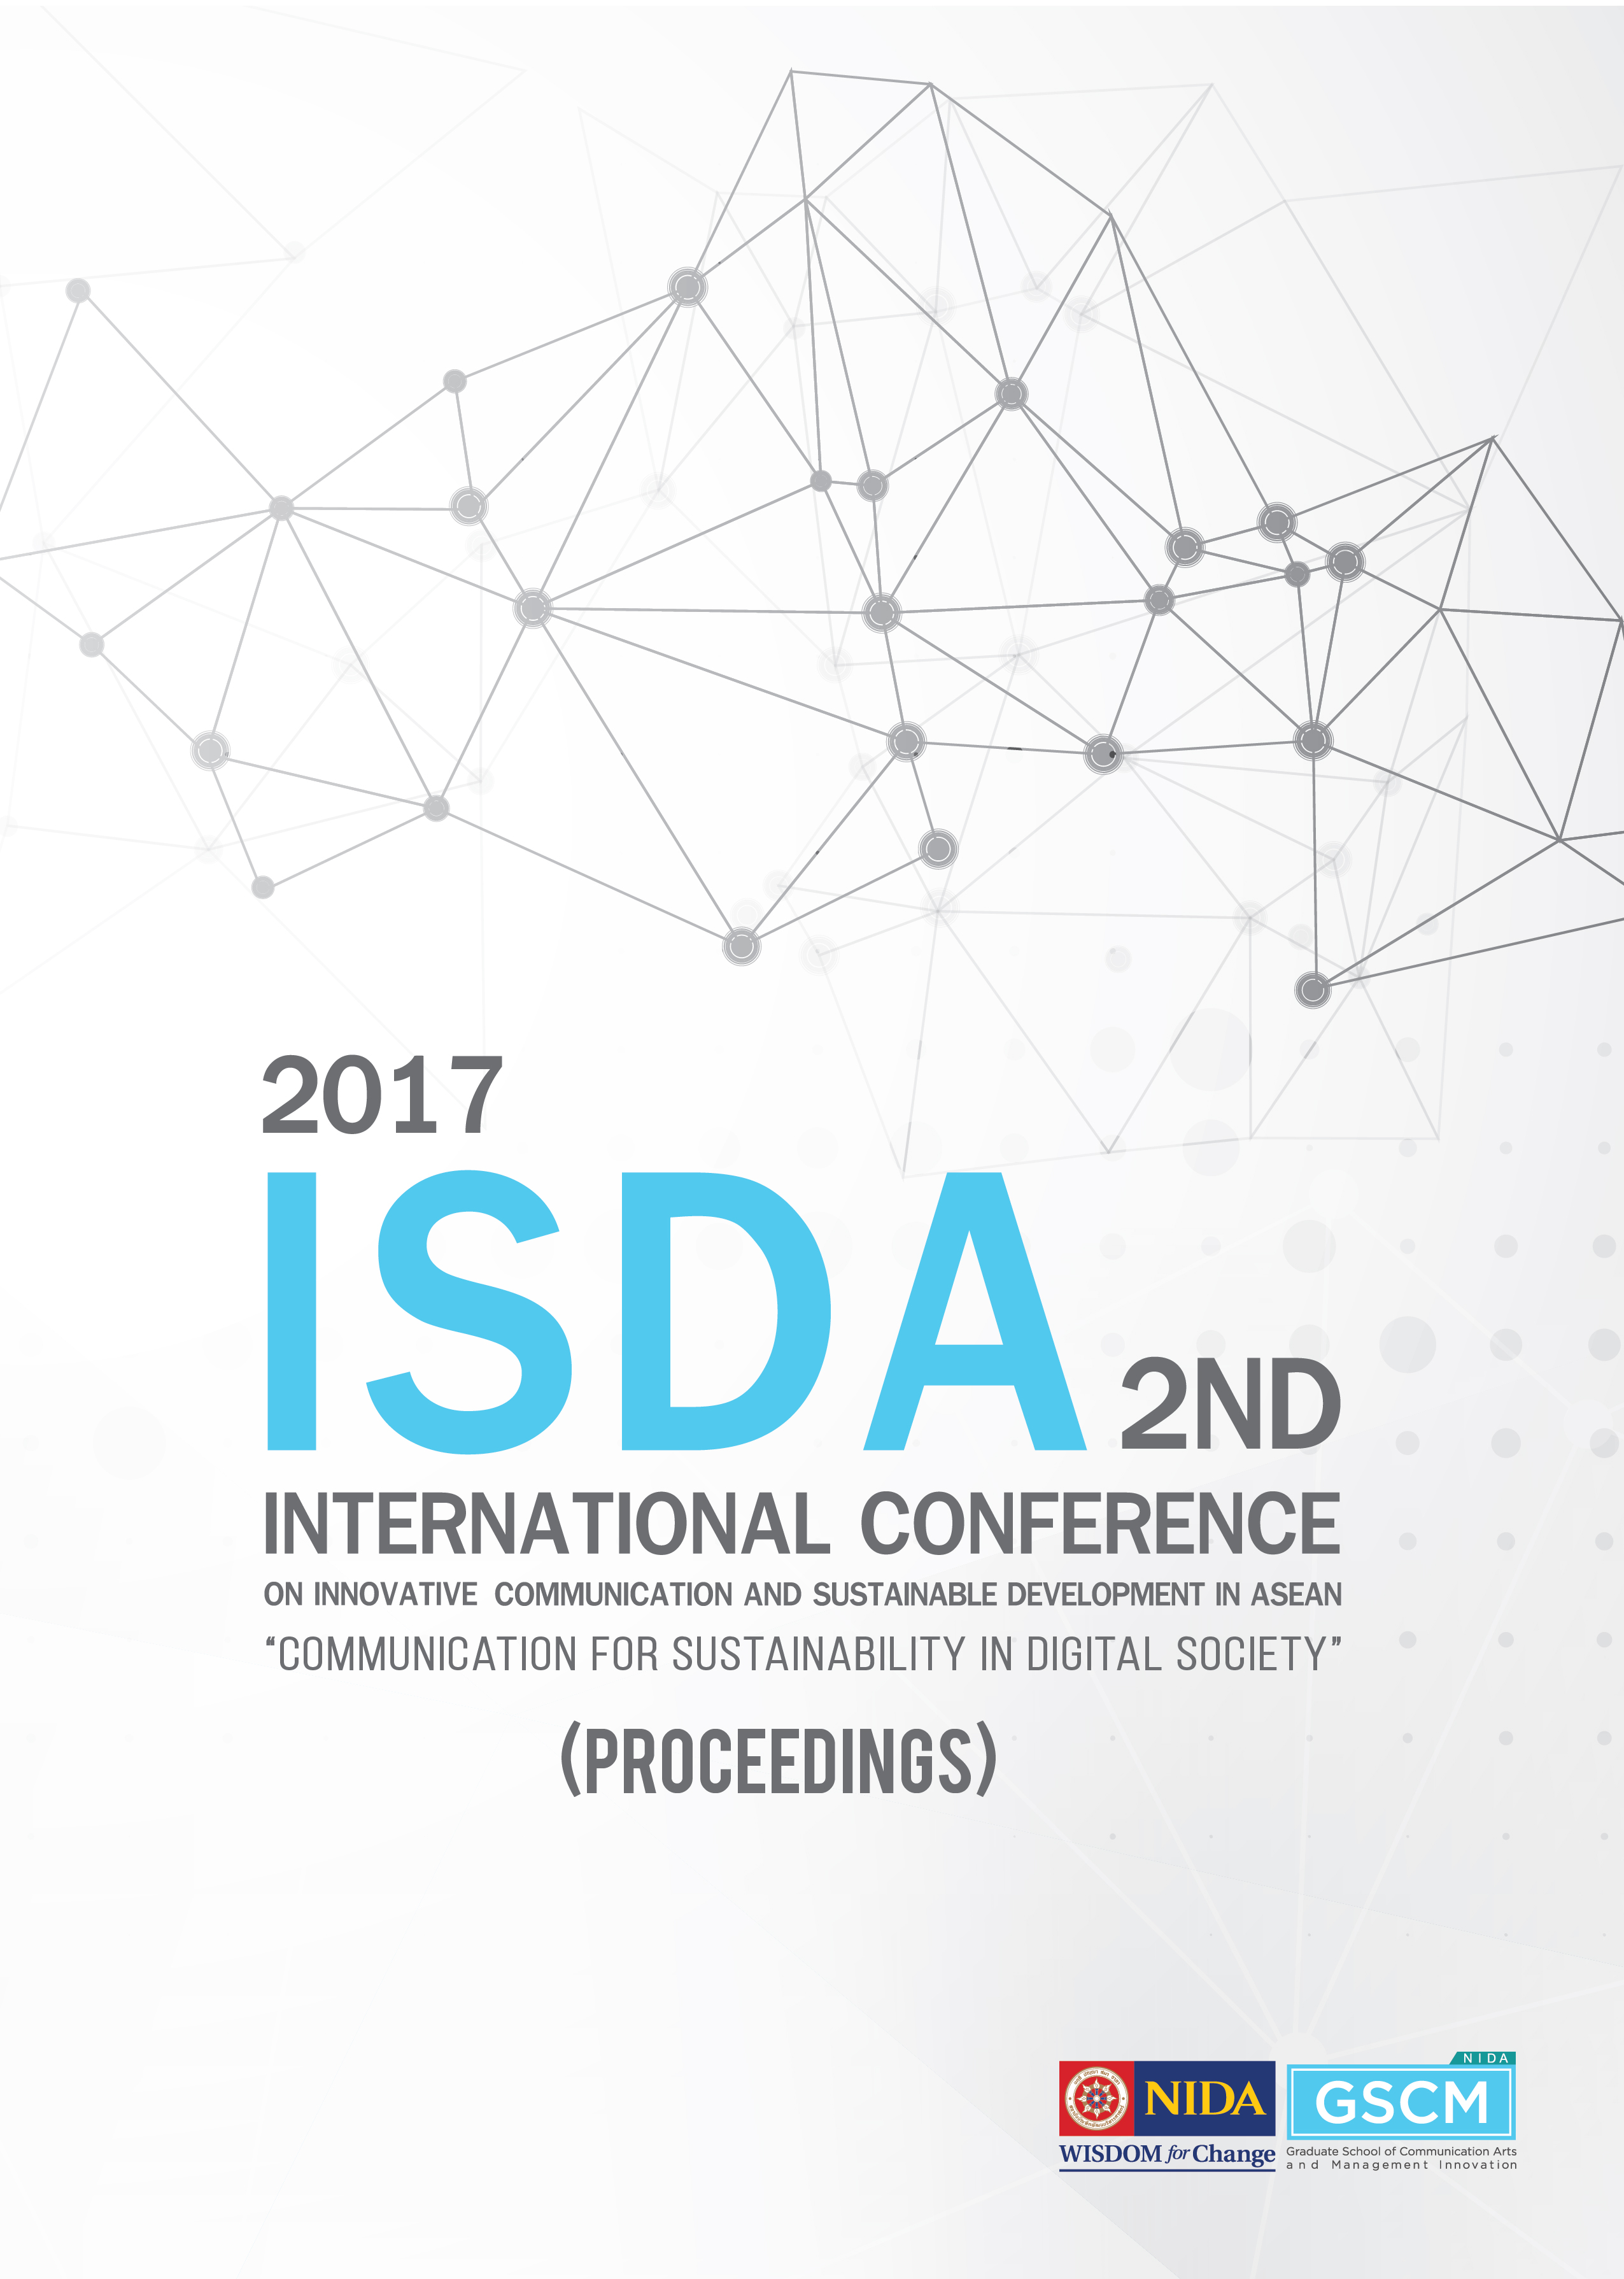 2nd International Conference (ISDA) Proceedings